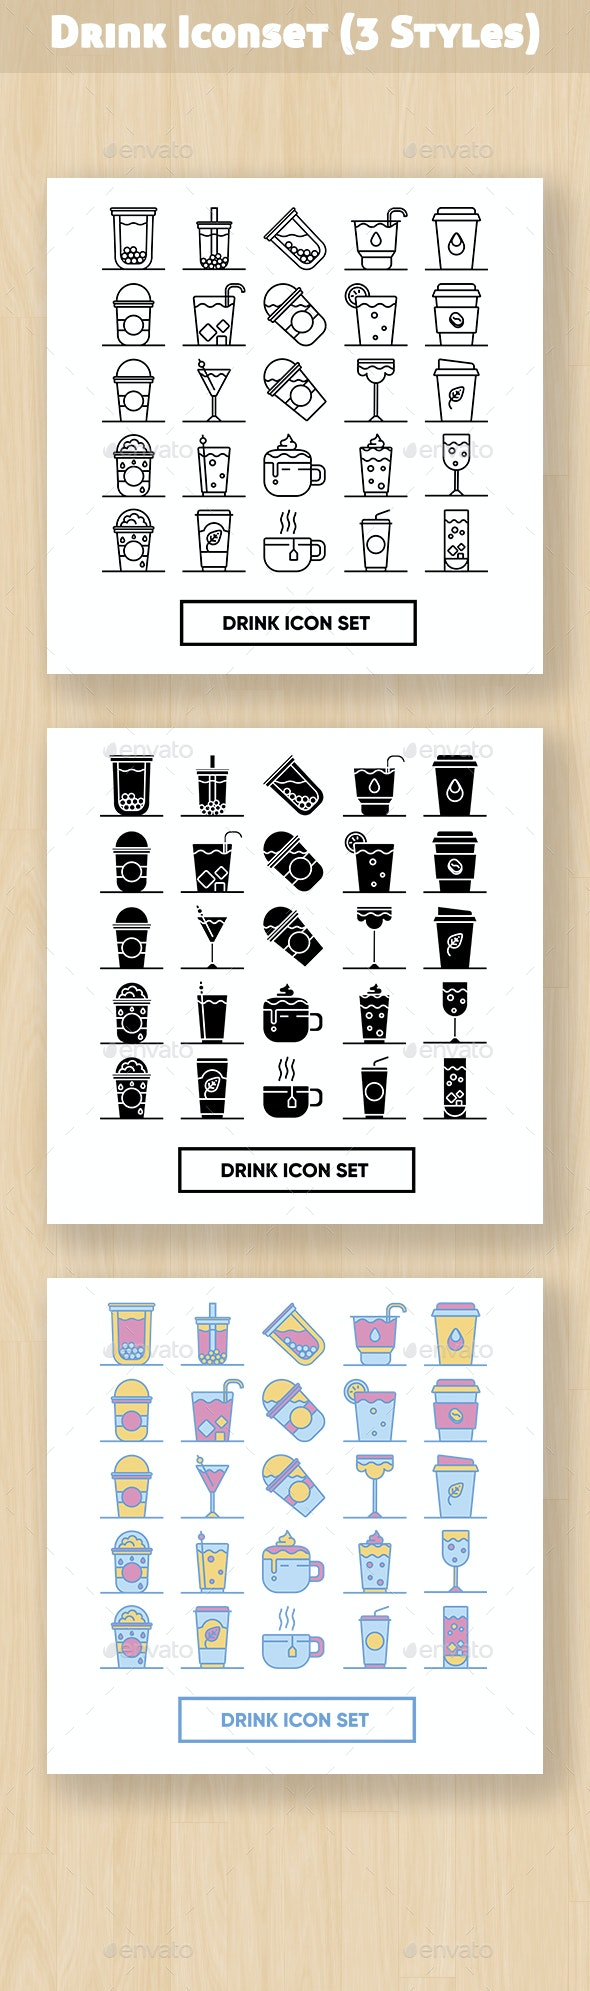 Drinks Iconset - Objects Icons